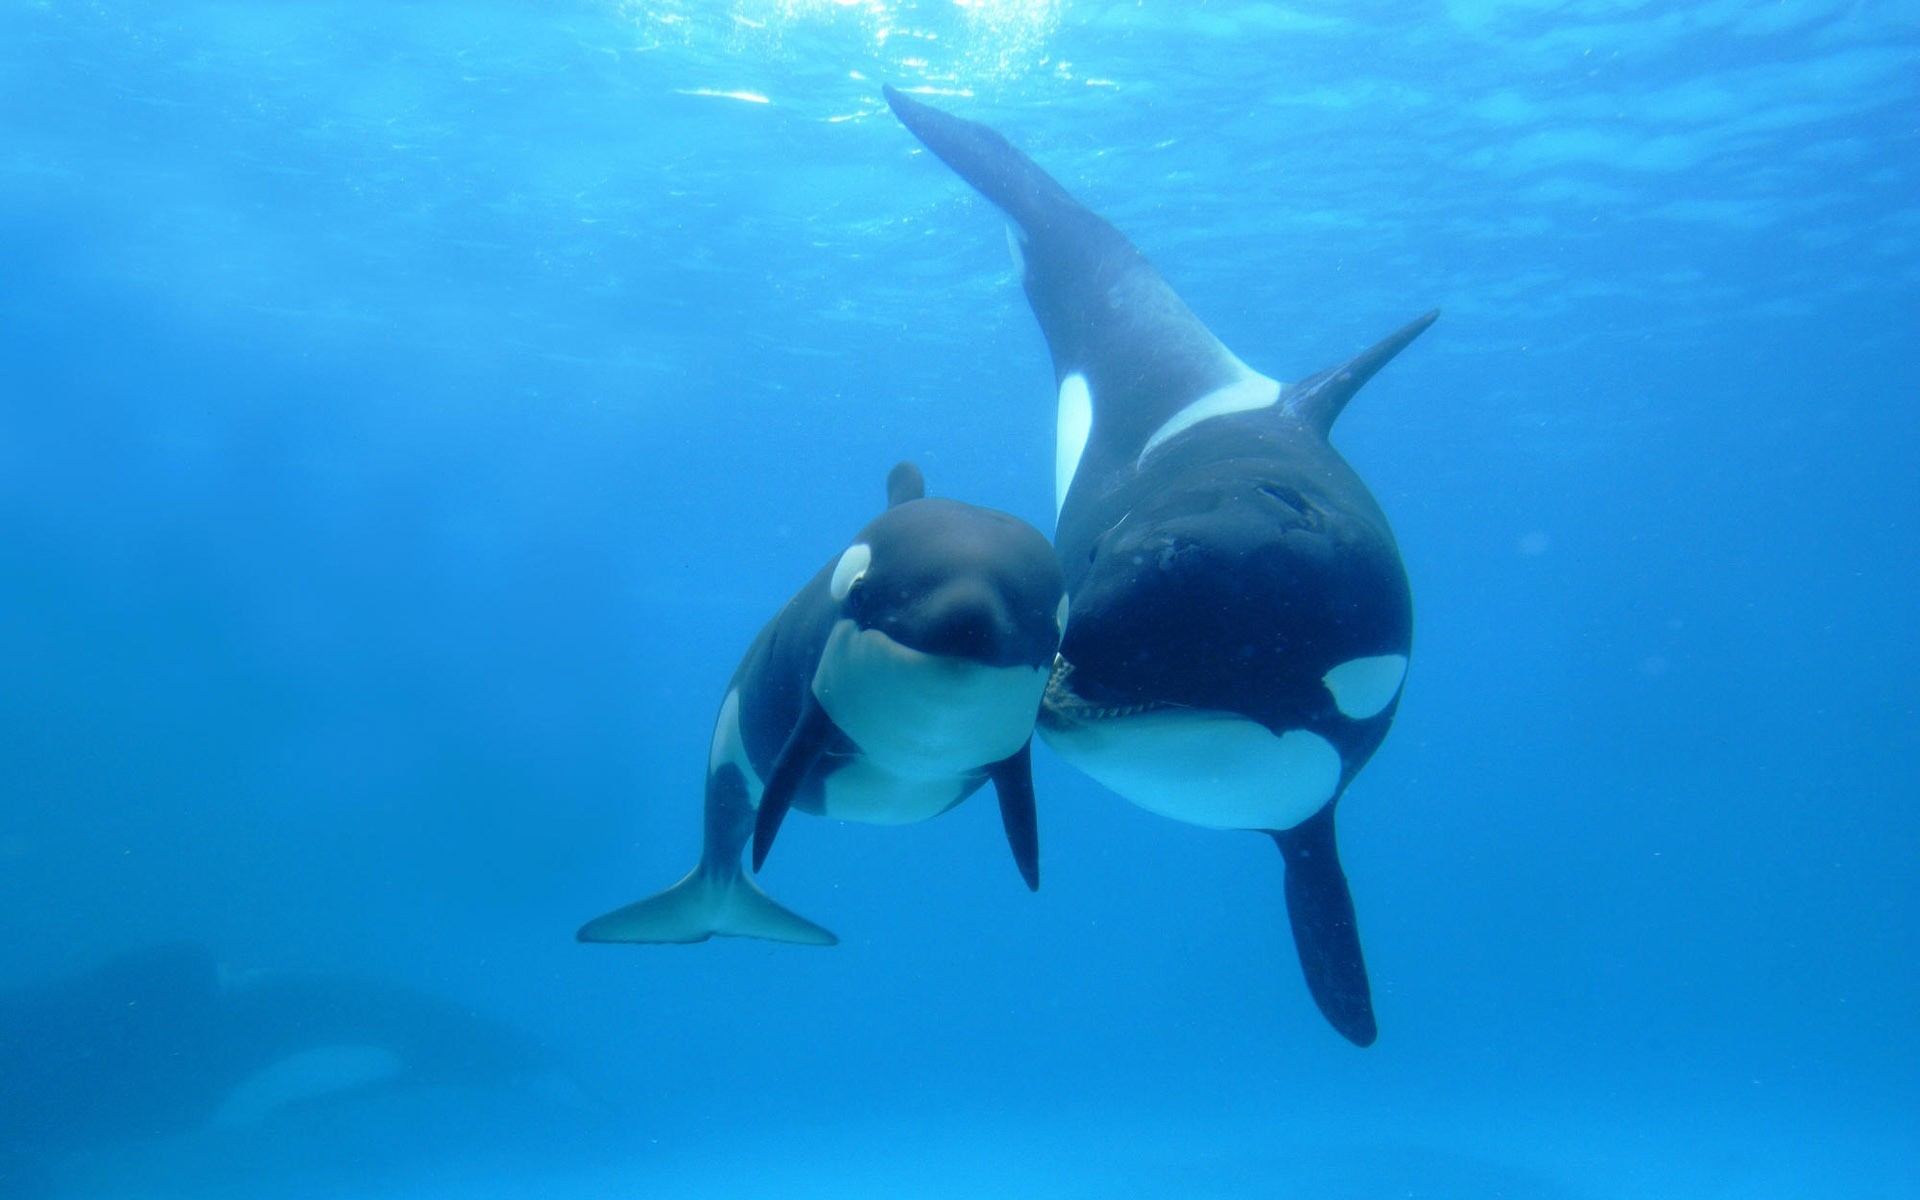 fish Whales killer whales HD Wallpaper